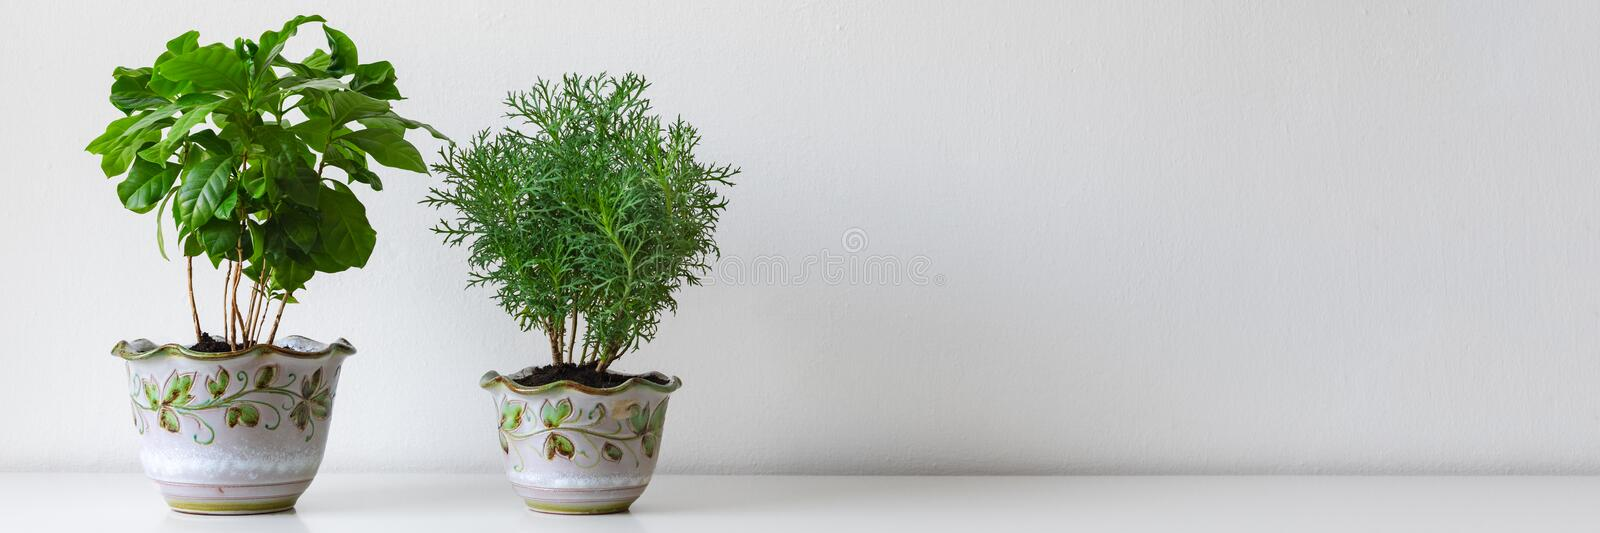 Various house plants in different pots against white wall. Indoor potted plants background. Modern room decoration. Various house plants in different pots royalty free stock images